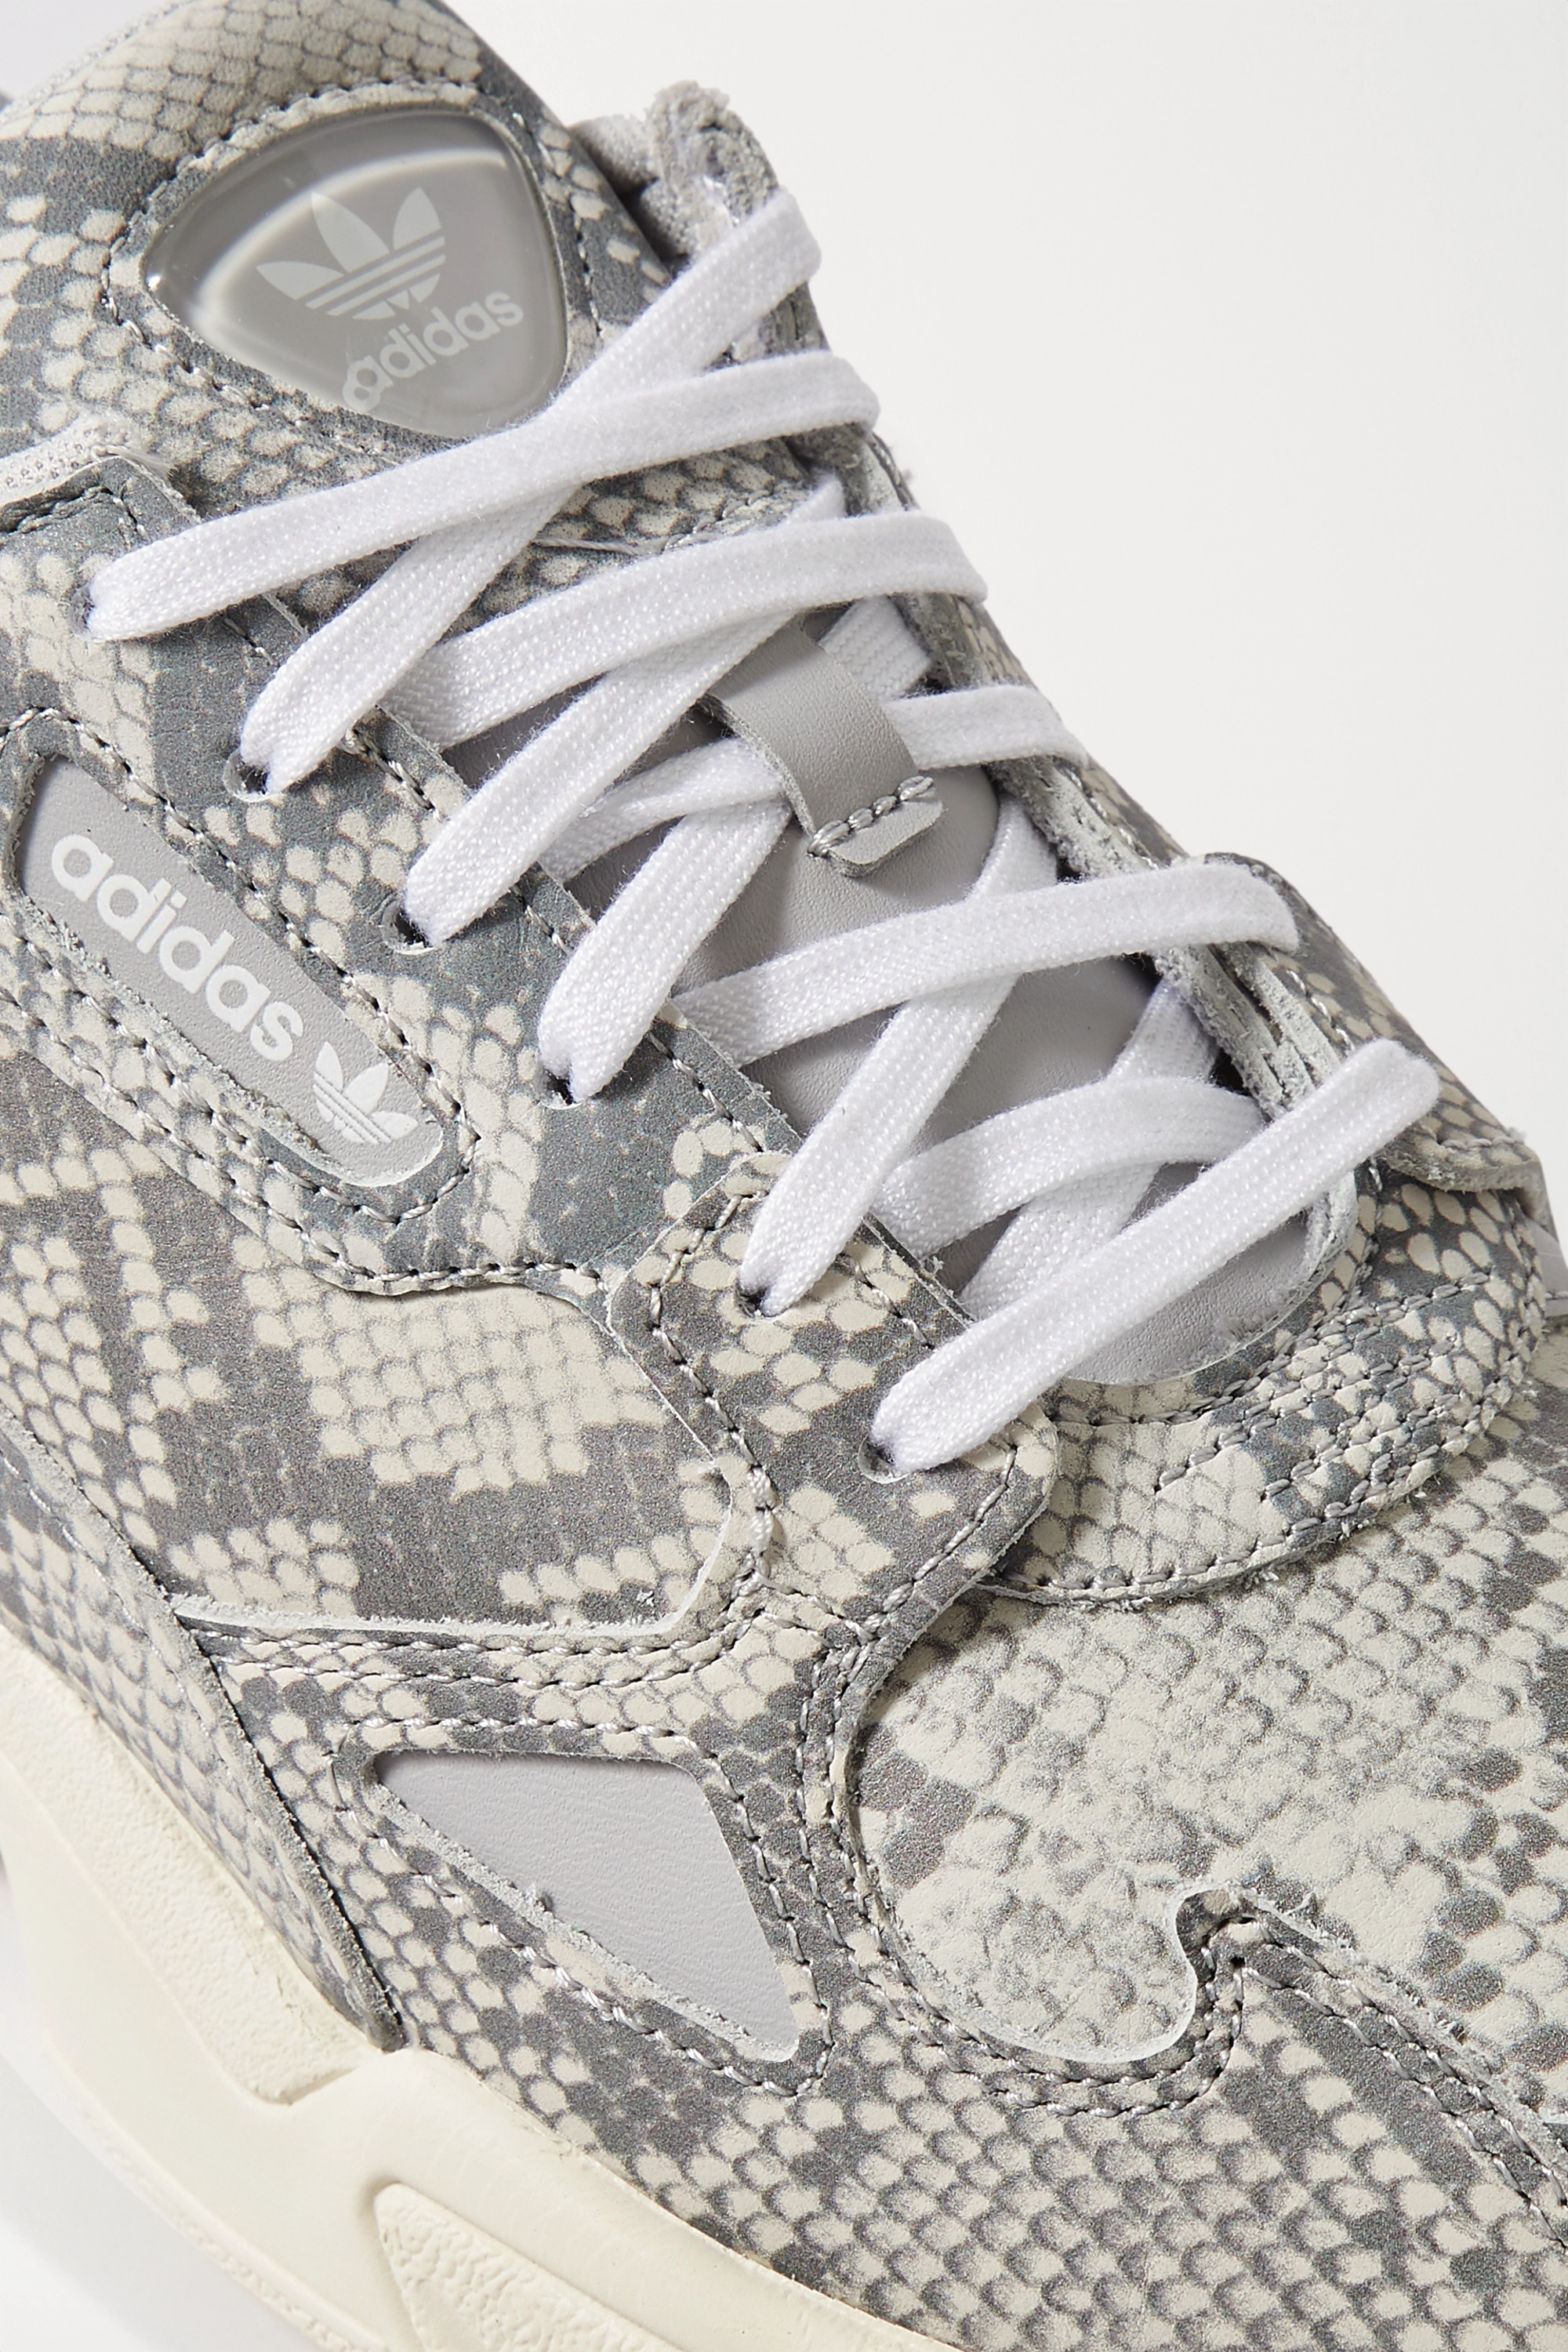 adidas Originals Falcon snake-effect leather sneakers